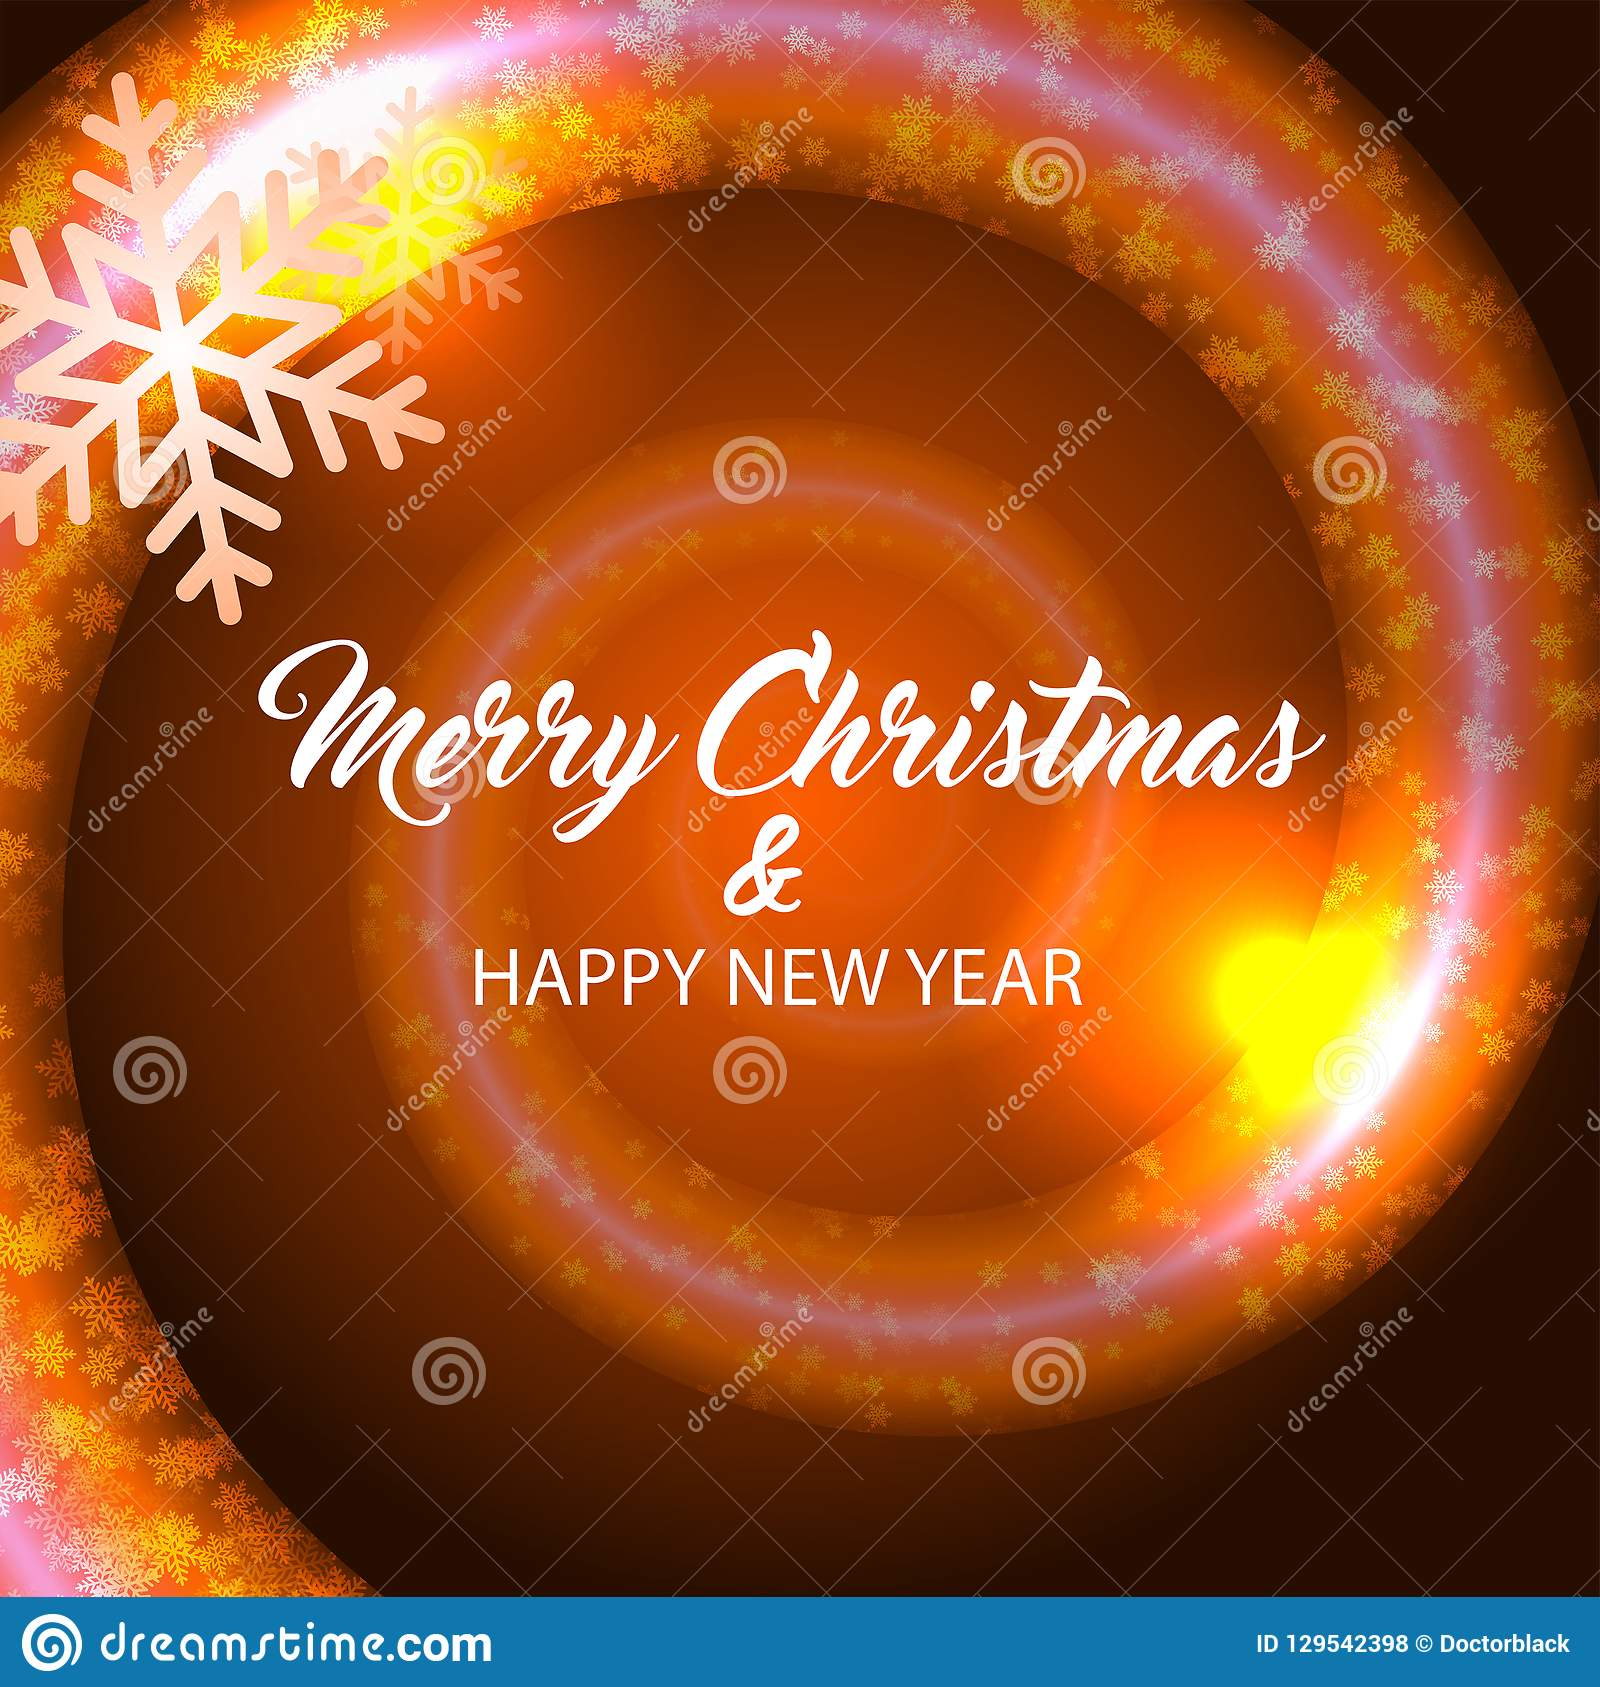 Merry christmas and happy new year. Orange background.